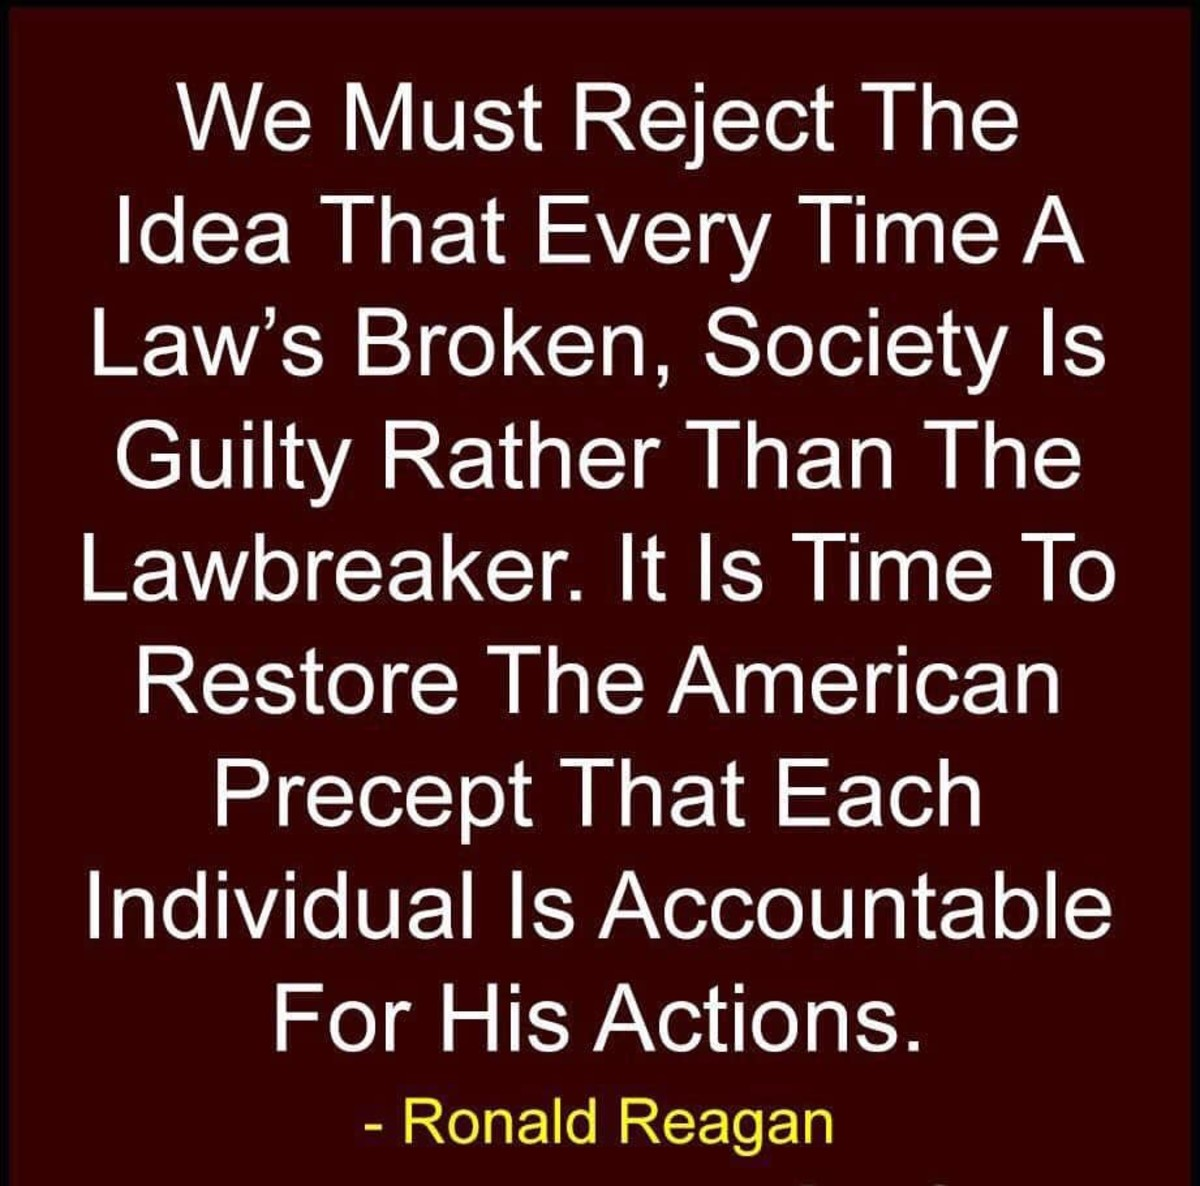 President Ronal Reagan knew that what is happening today in America could happen. So, when we look at what is happening, before we decide who is right and who is wrong, we should reflect on what President Ronald Reagan said.